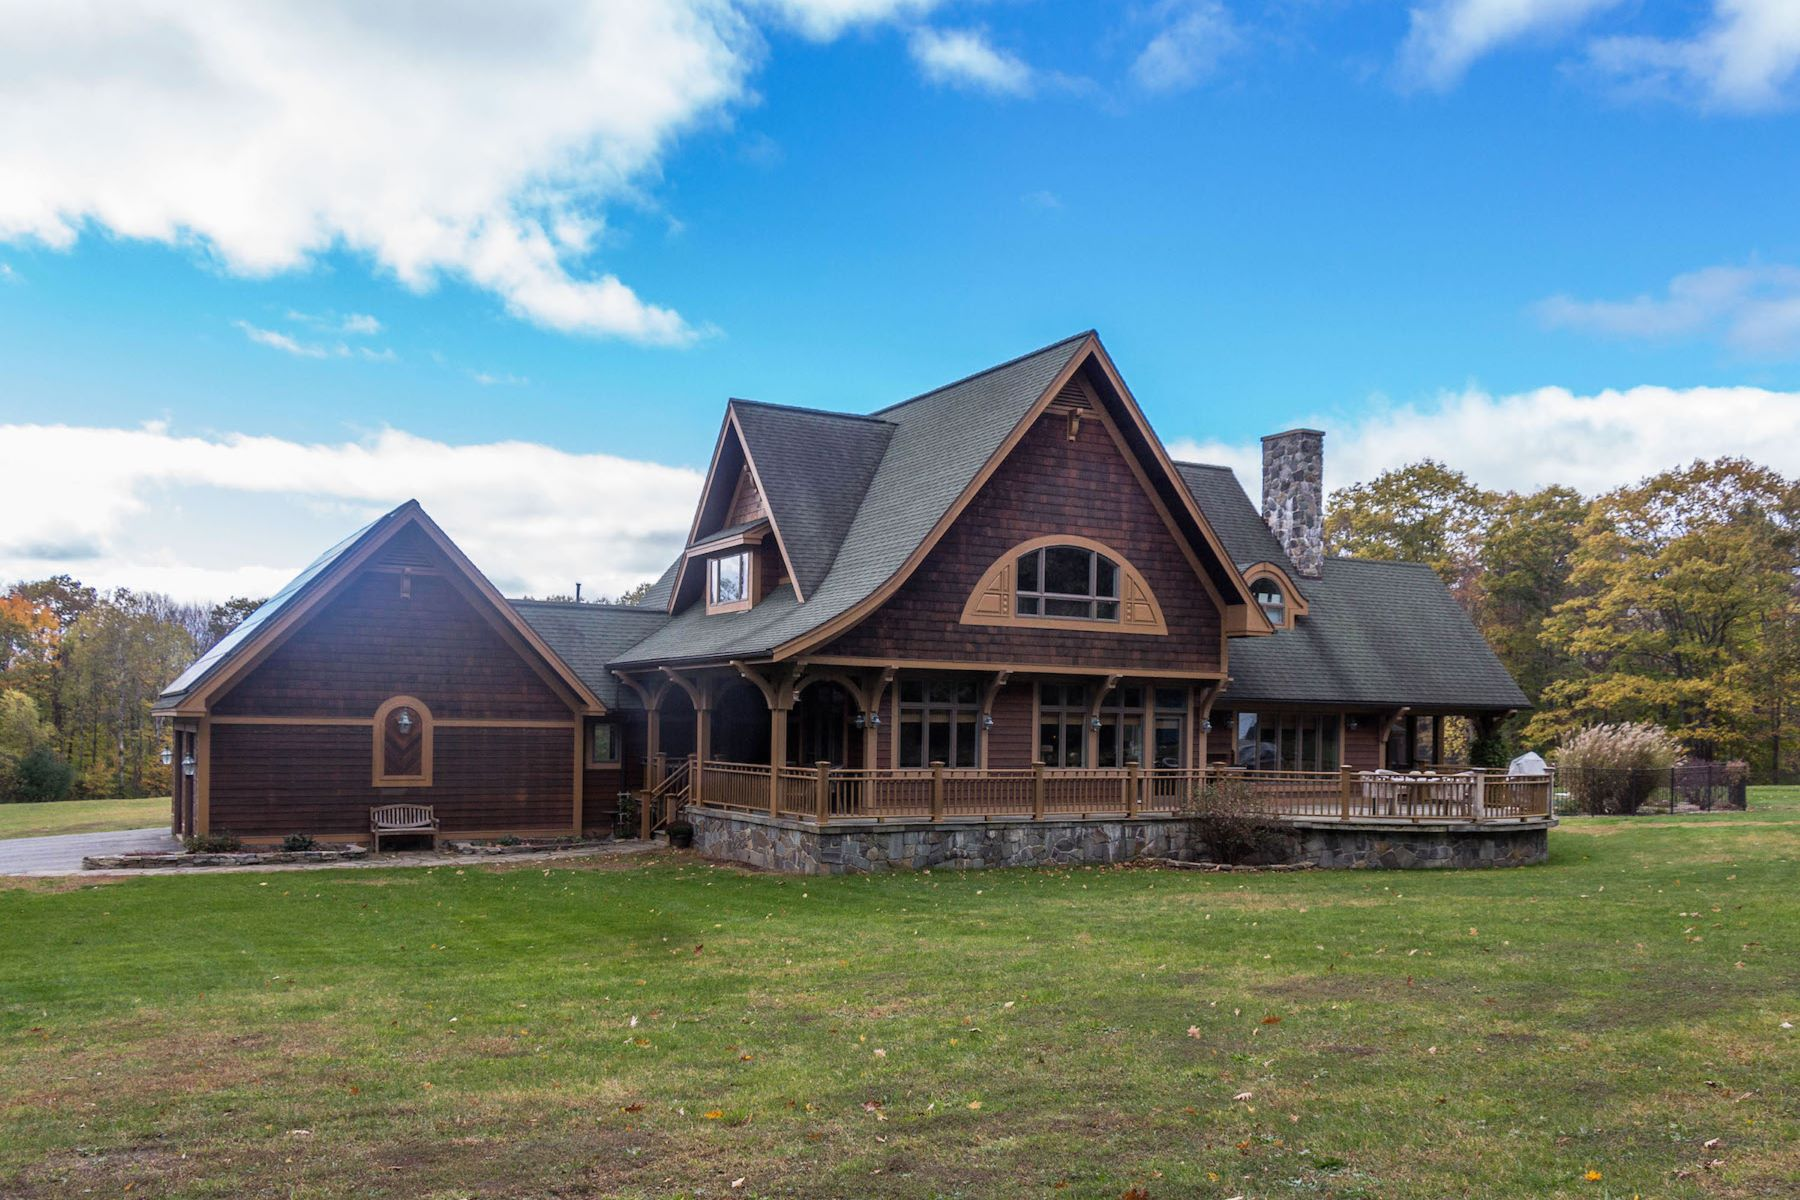 Single Family Homes for Active at Storybook Craftsman Chalet 1112 Whitesides Rd Galway, New York 12074 United States